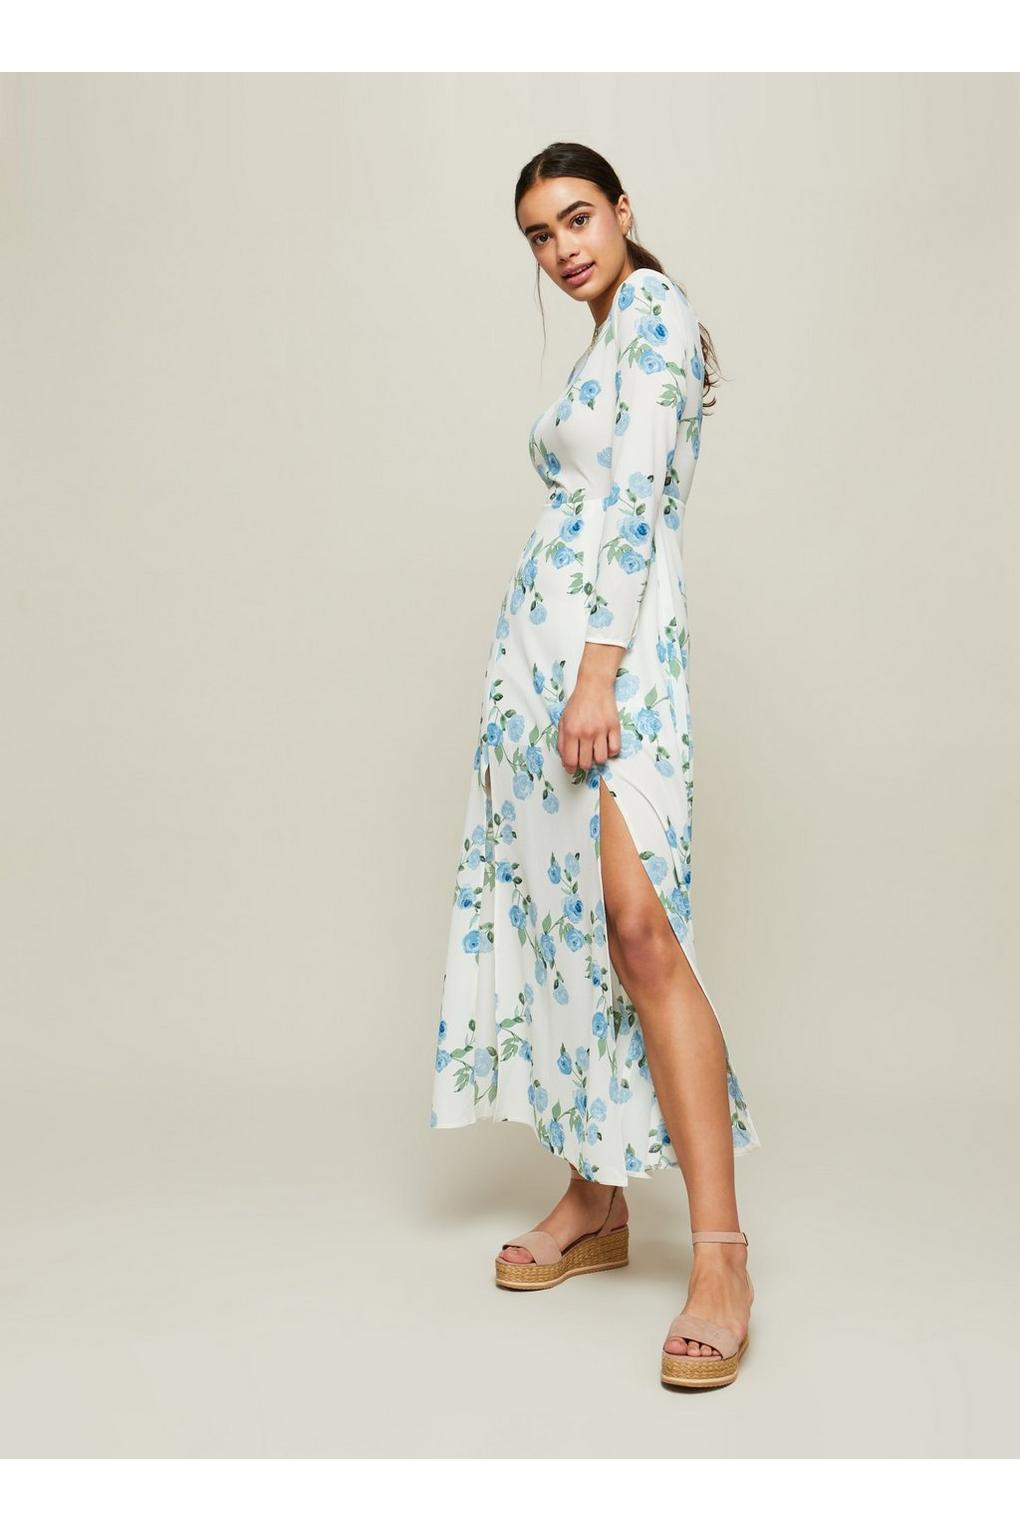 6b187b73d Gallery. Previously sold at: Miss Selfridge · Women's Floral Dresses ...